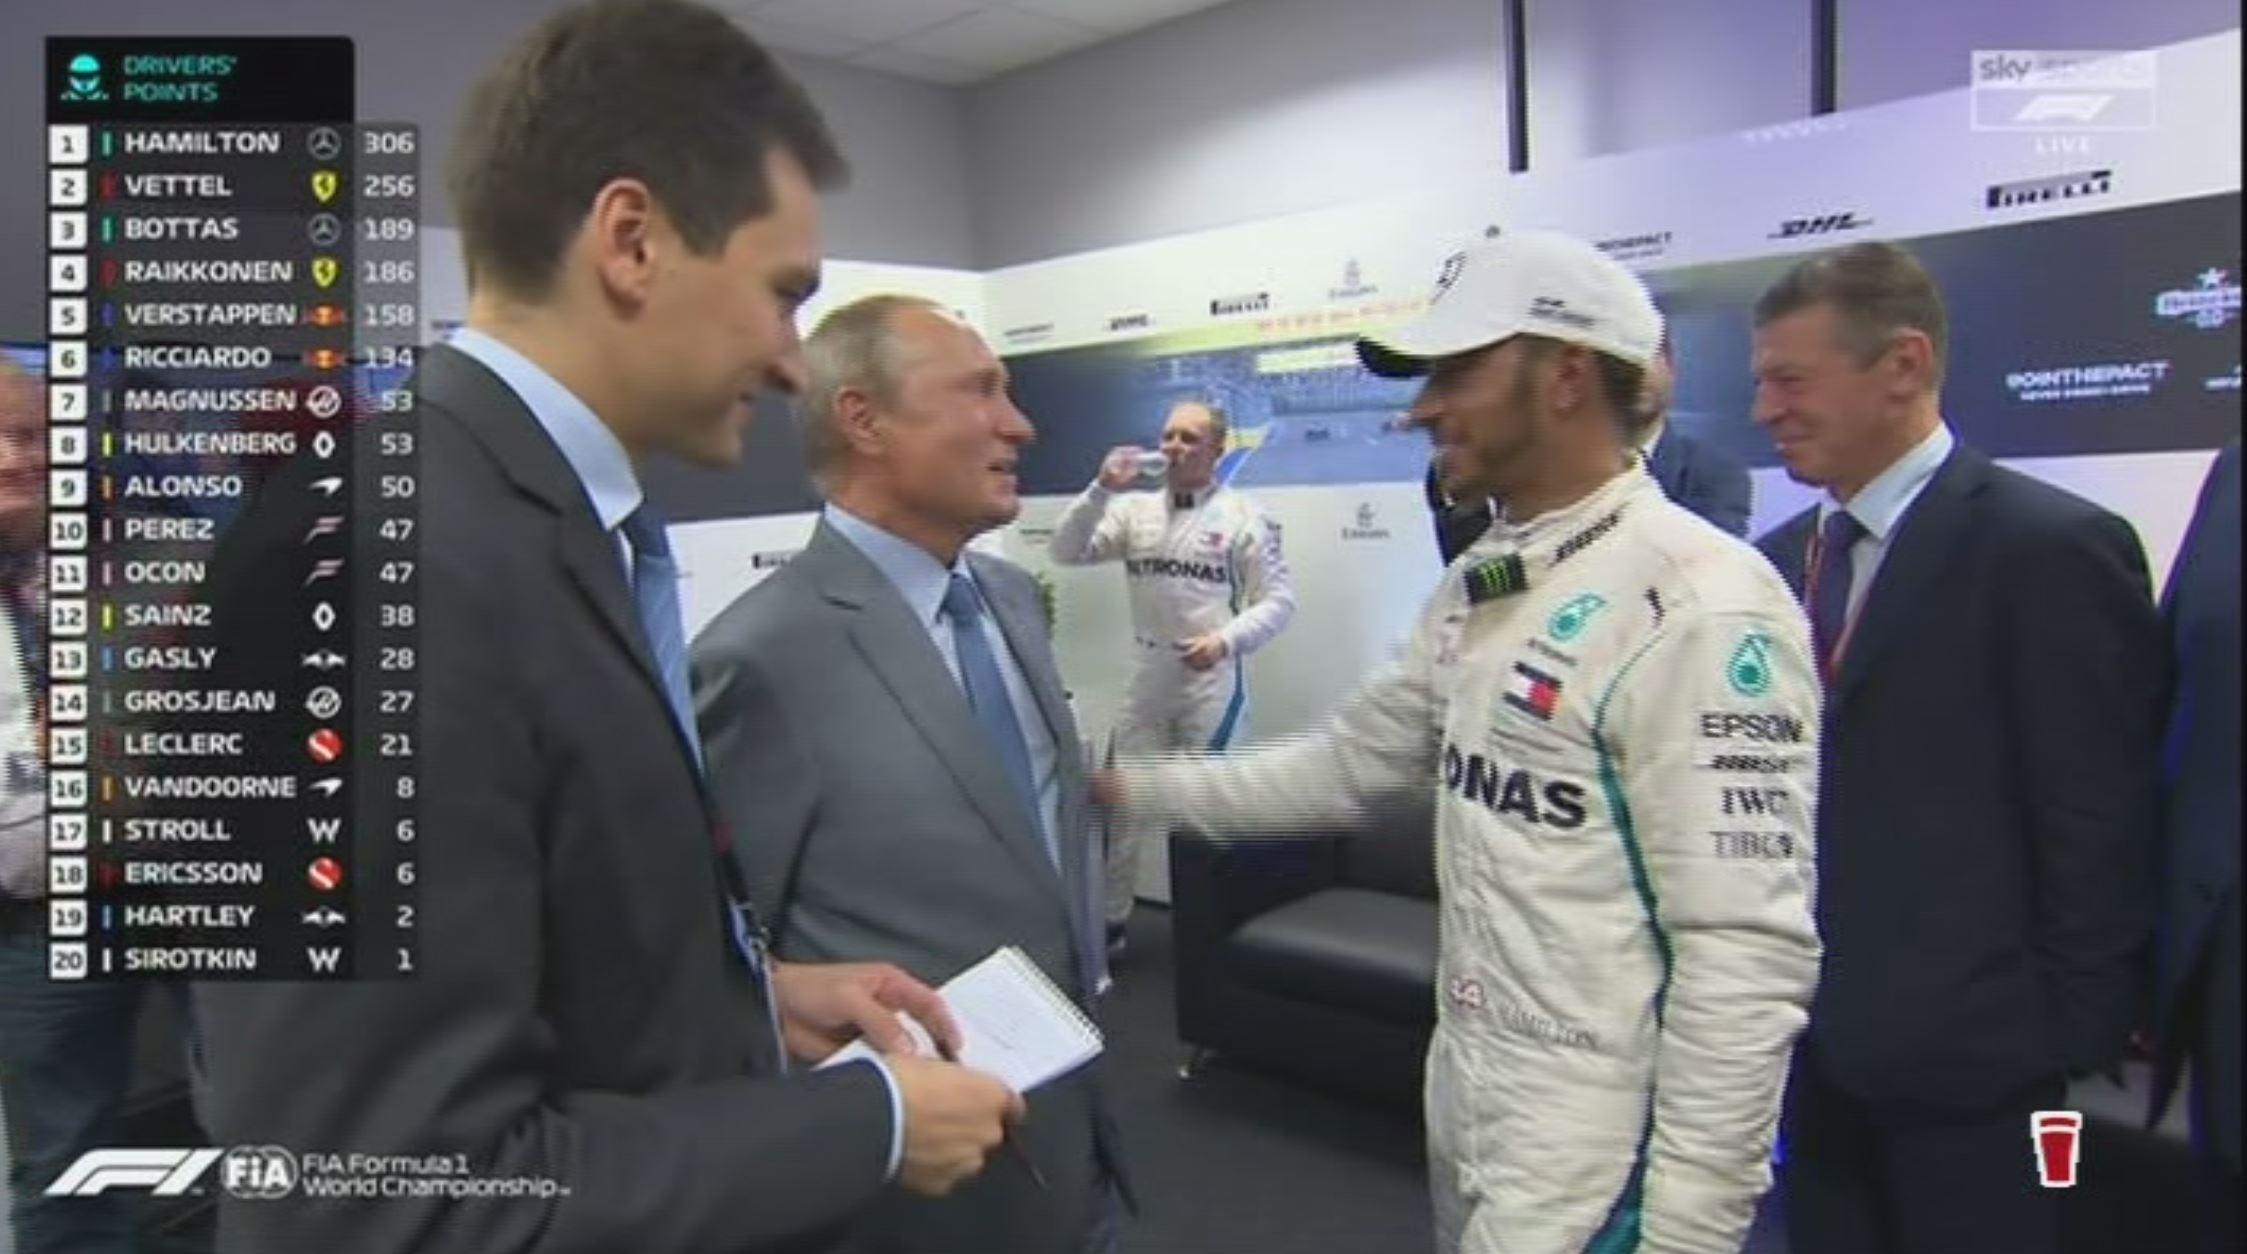 Lewis Hamilton pleads his innocence to the Russian president